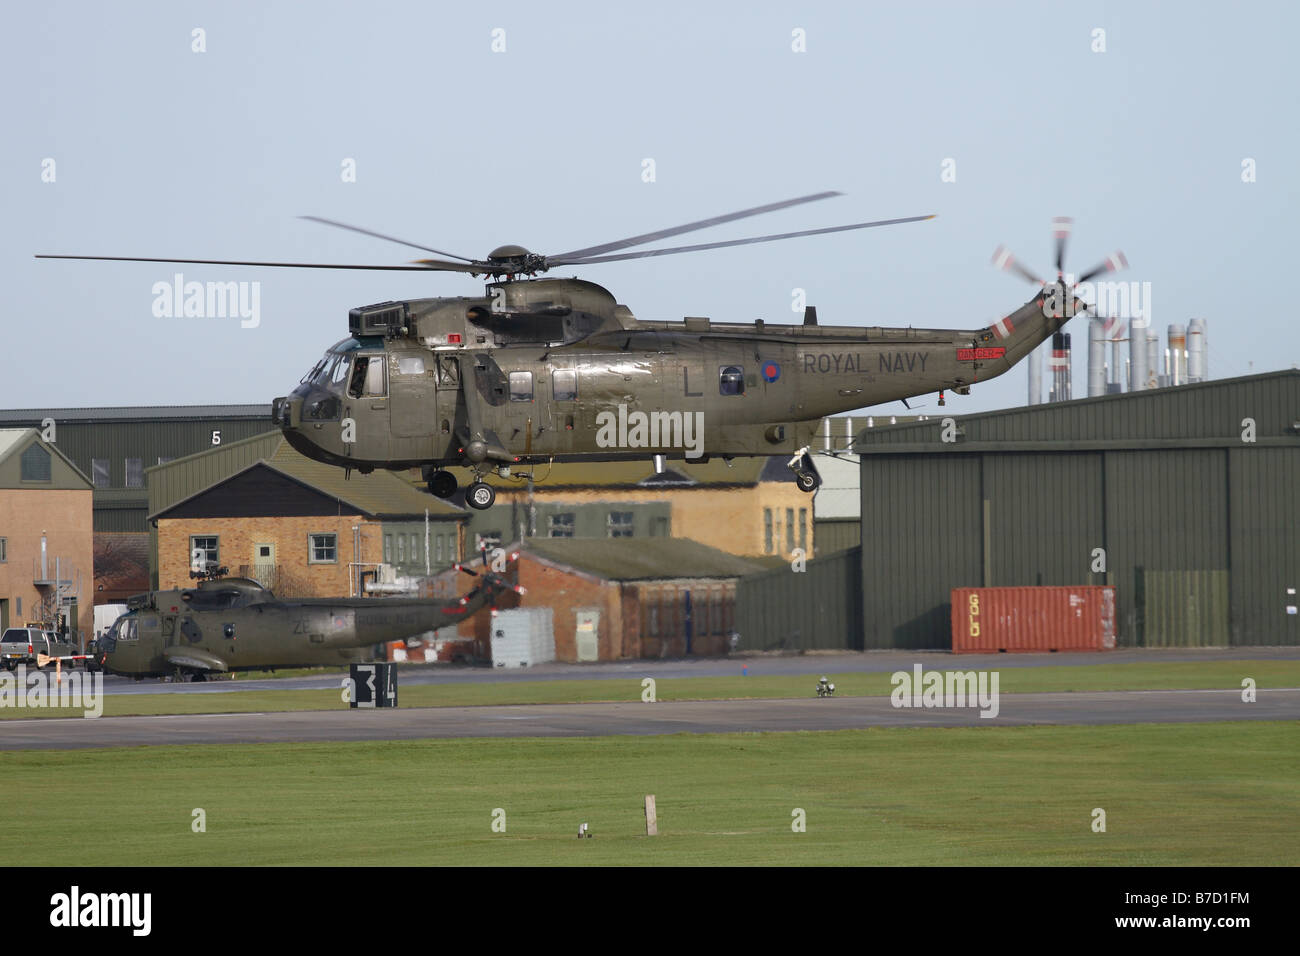 British Royal Navy Westland Sea King HC4 troop carrying helicopter taking off at RNAS Yeovilton Somerset in January - Stock Image